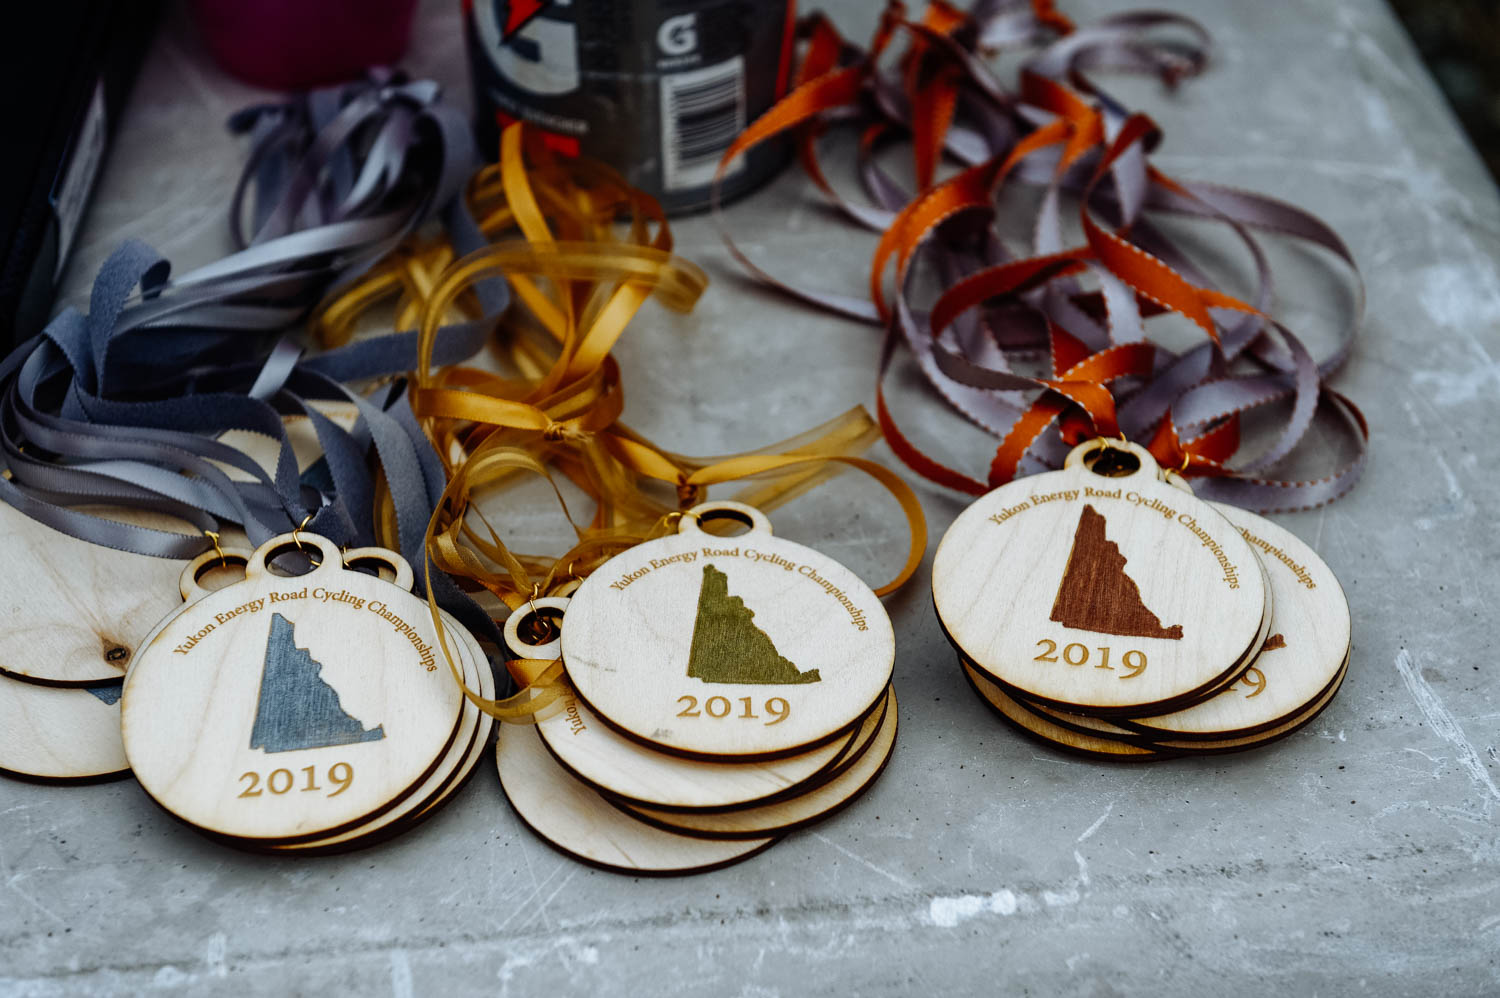 Beautiful wooden medals created by Dave Jackson.